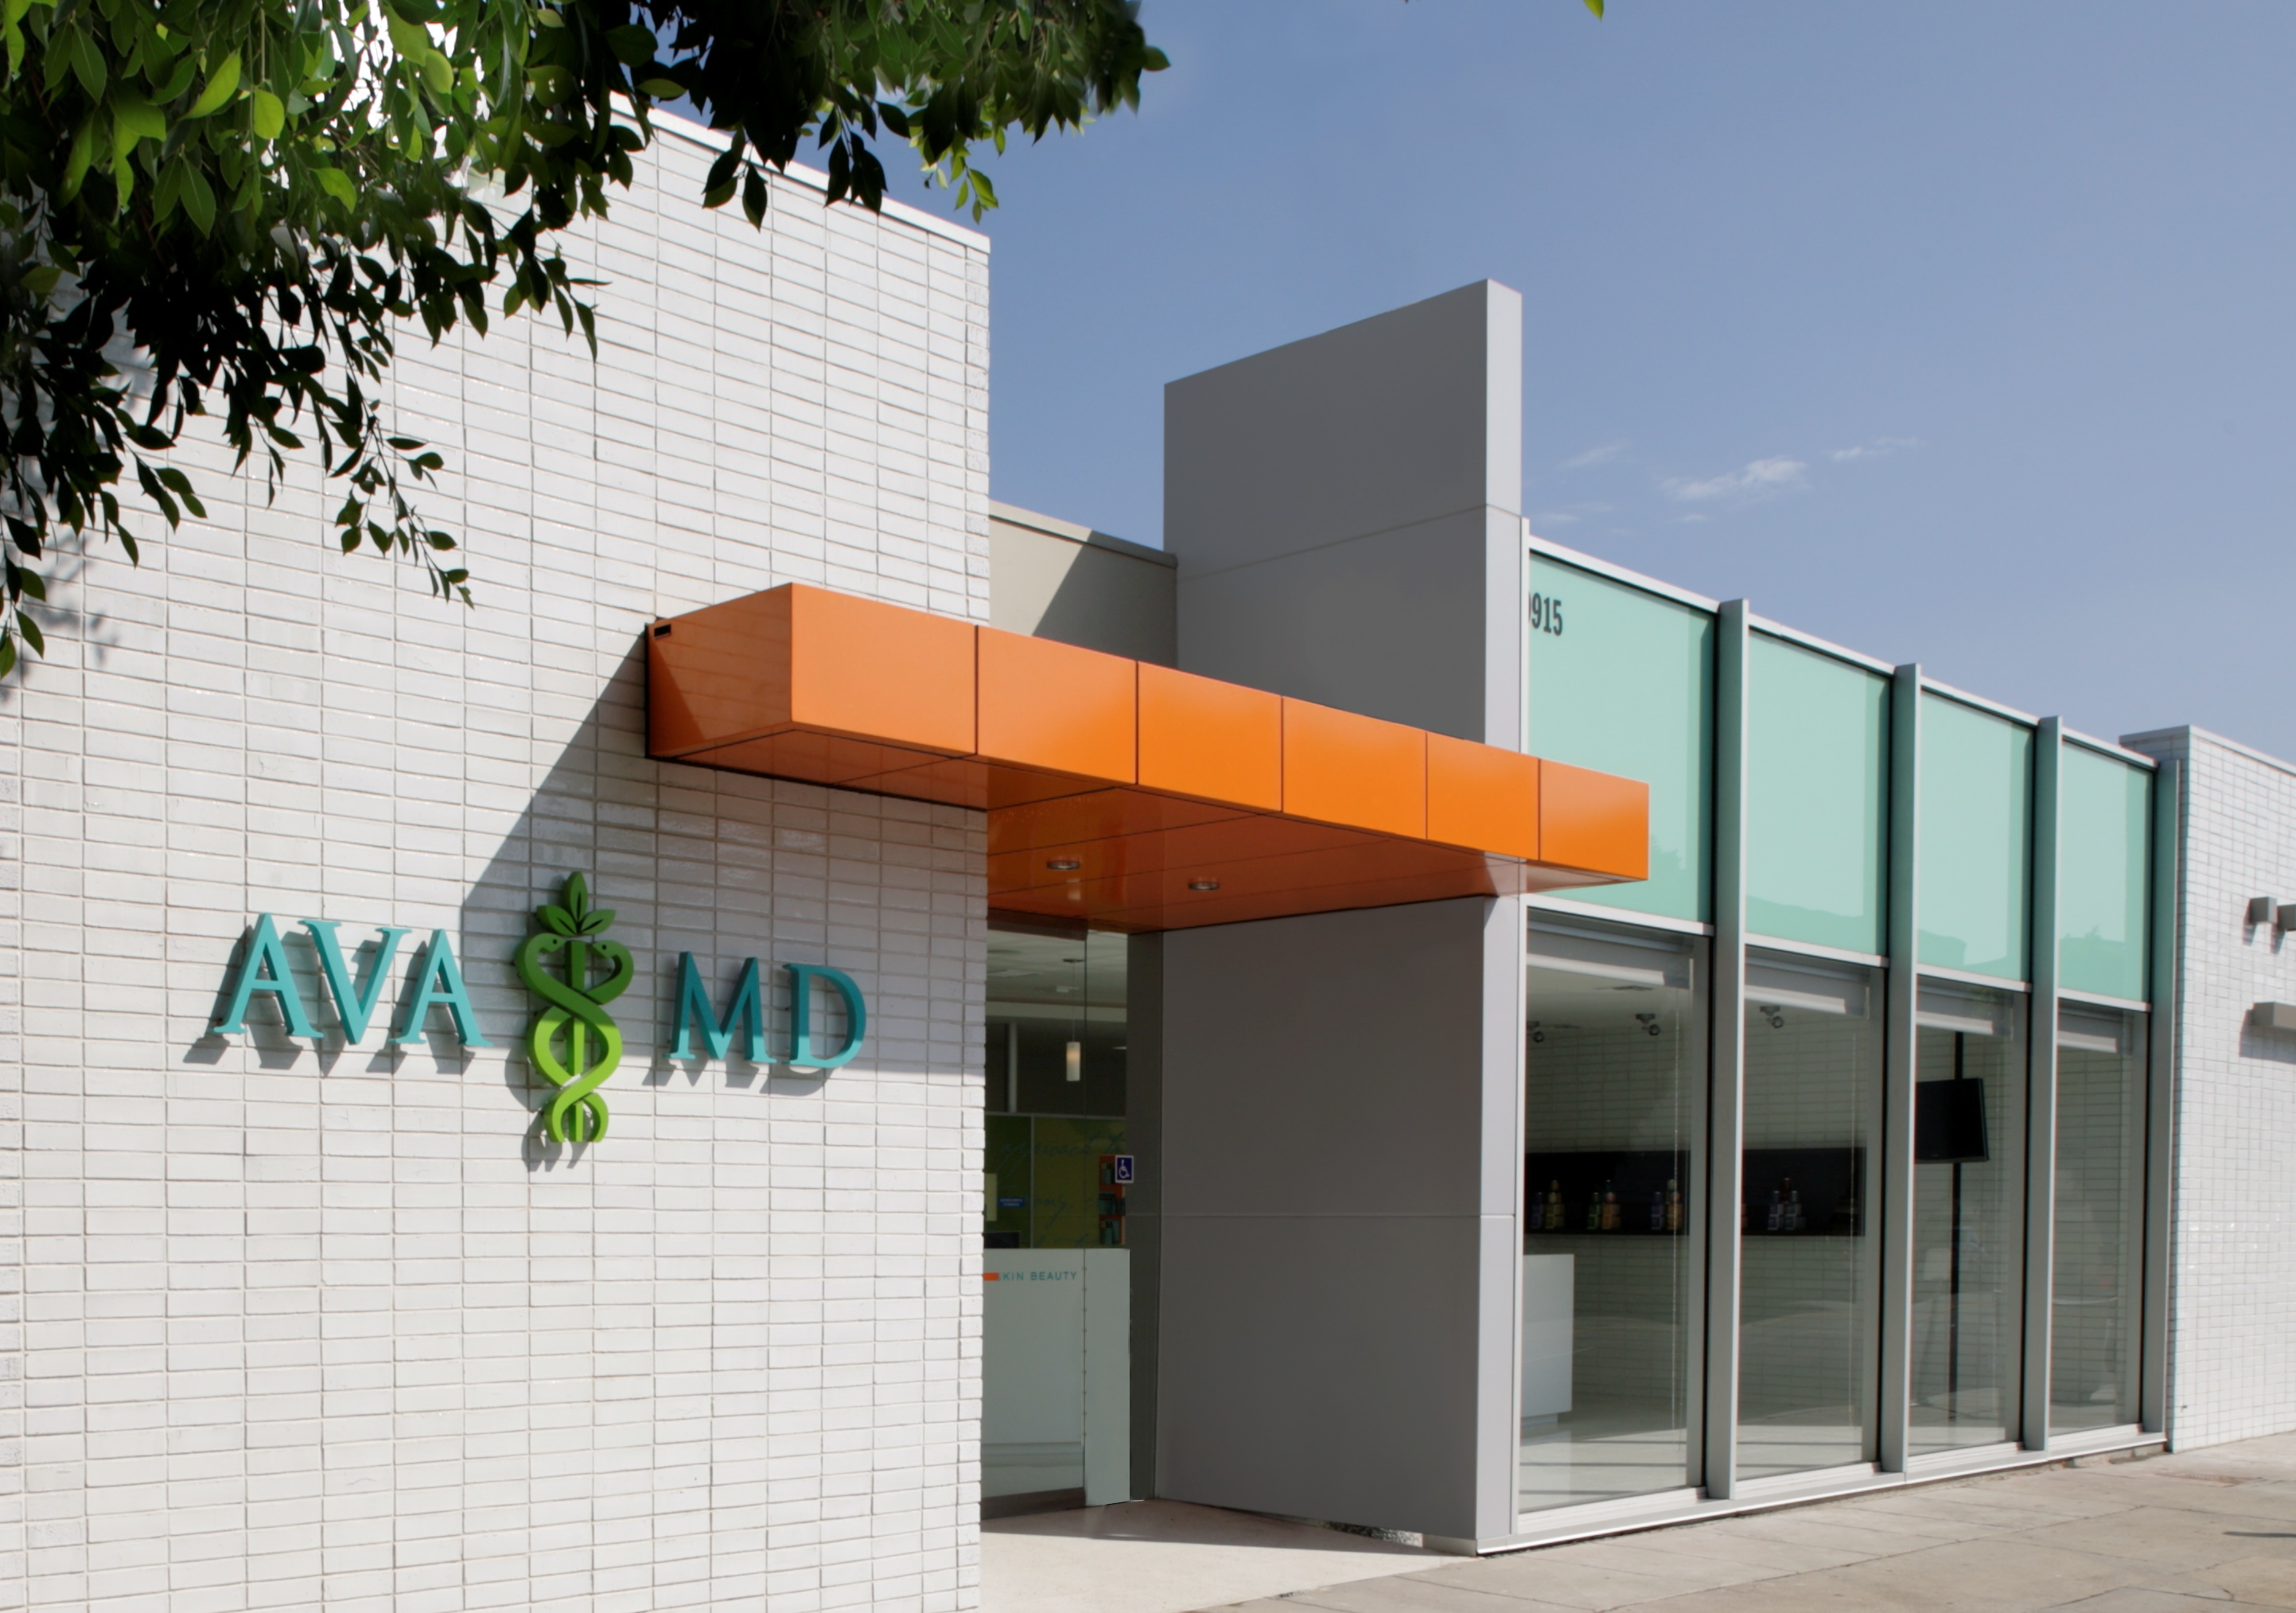 AVA MD's branch in Beverly Hills